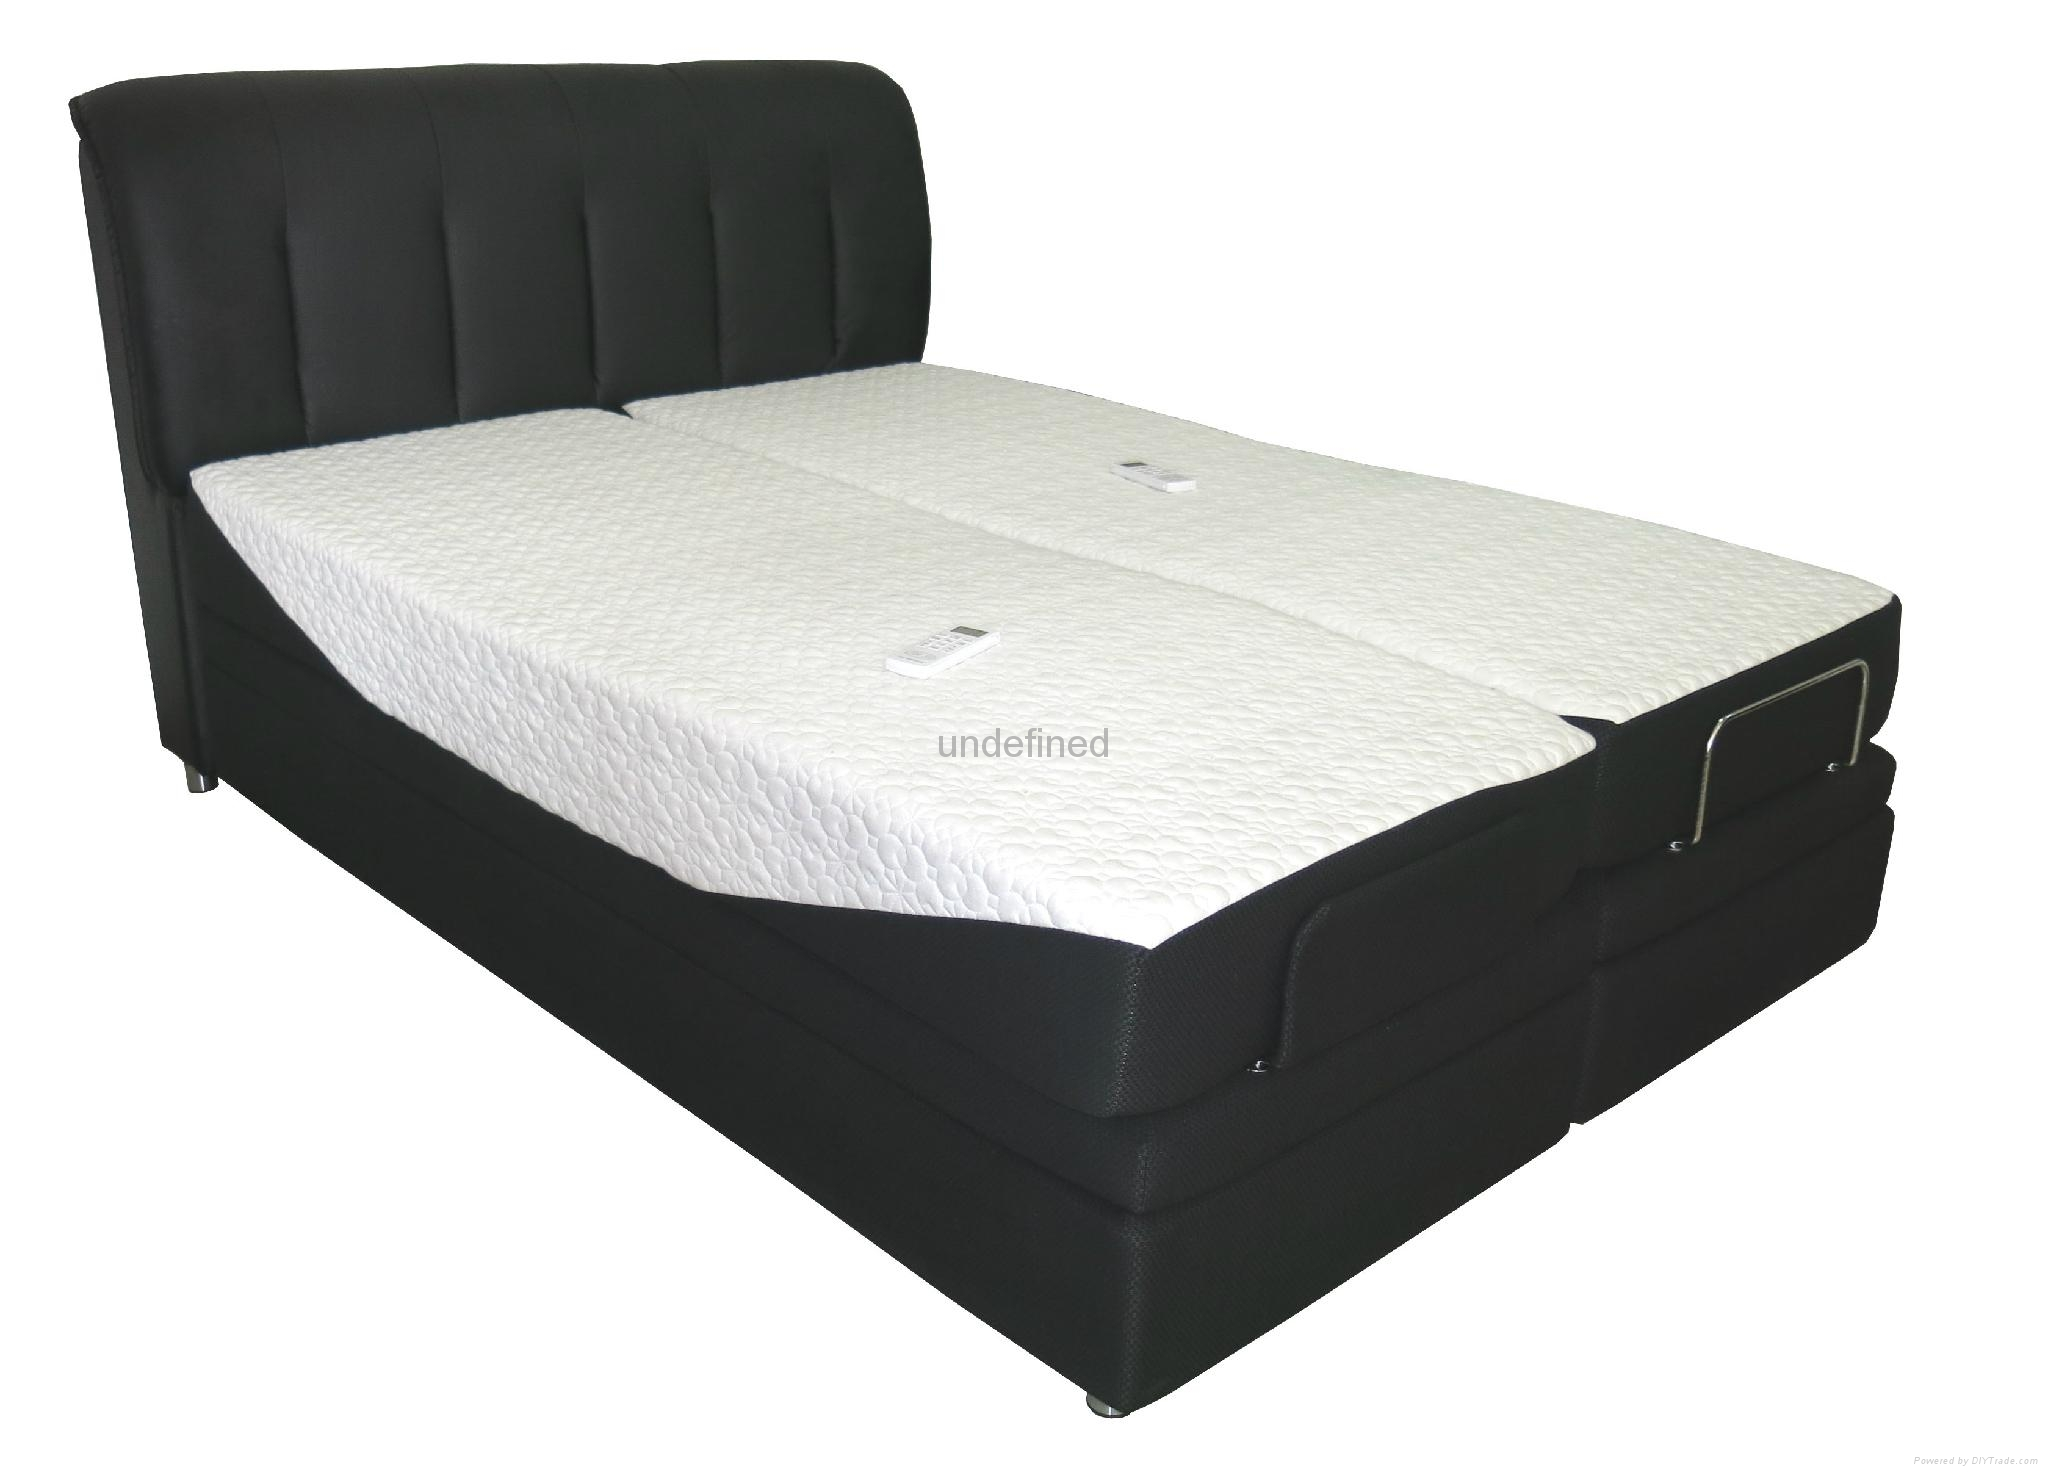 Queen Size Electric Adjustable Bed Frame : Queen size adjustable bed structures e